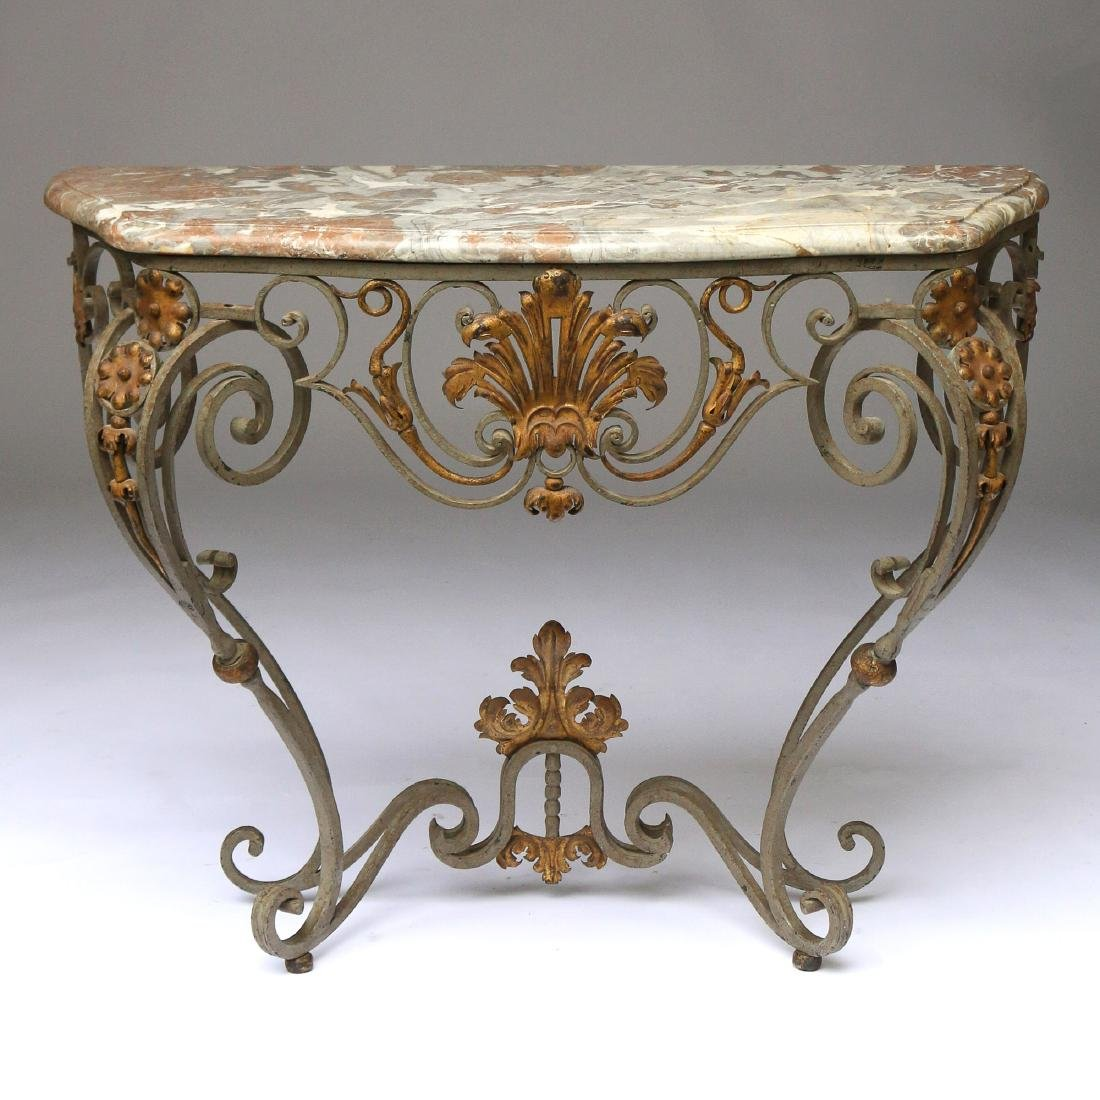 ANTIQUE FRENCH WROUGHT-IRON & MARBLE CONSOLE TABLE